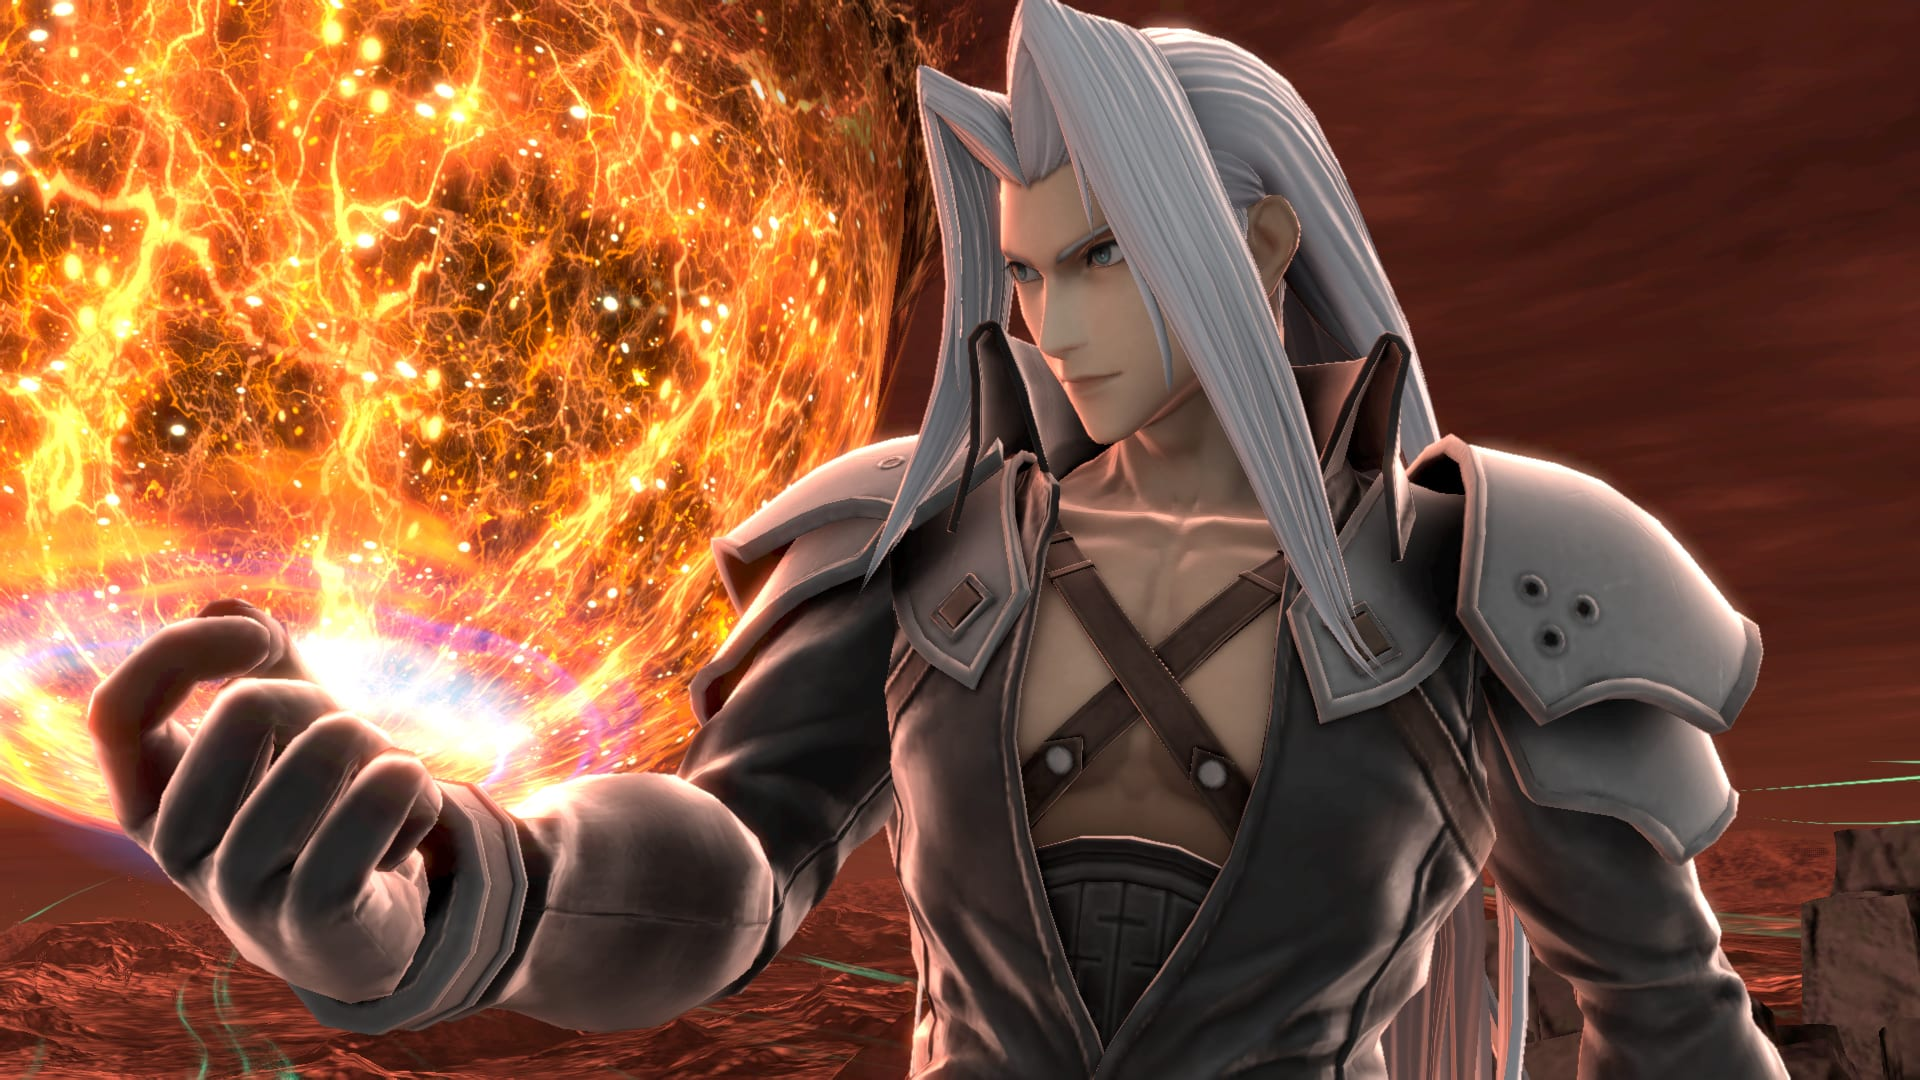 Sephiroth Launch Date, Geno Costume & Extra Revealed Throughout Smash Bros. Presentation 1